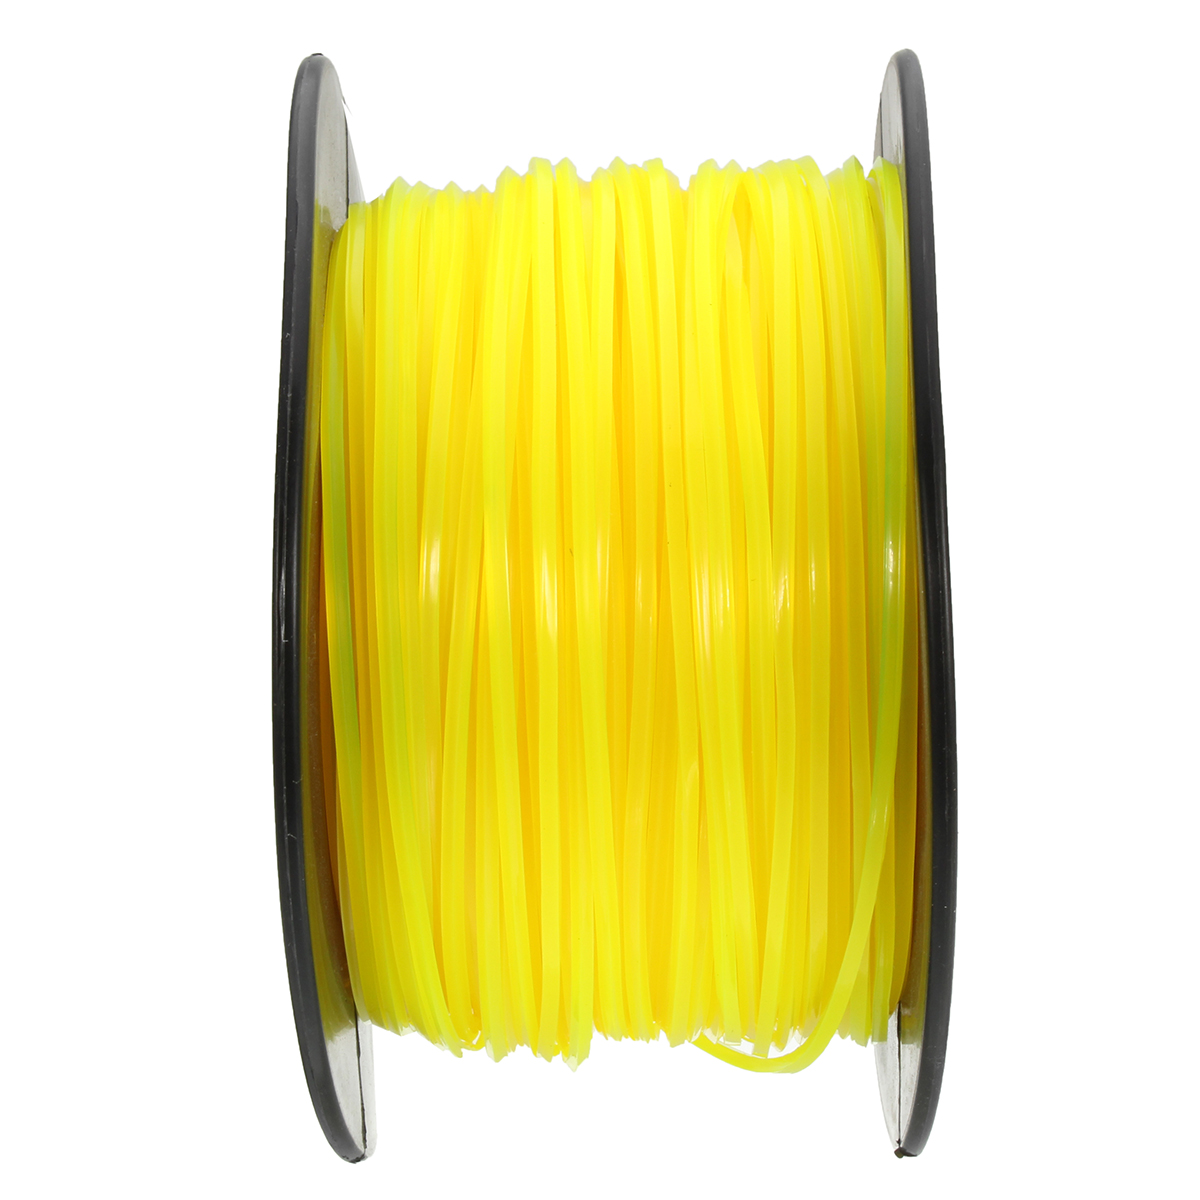 2.5mm x 120m Strimmer Trimmer Line Brushcutter Wire Nylon Cord Mower Rope Tools Kit